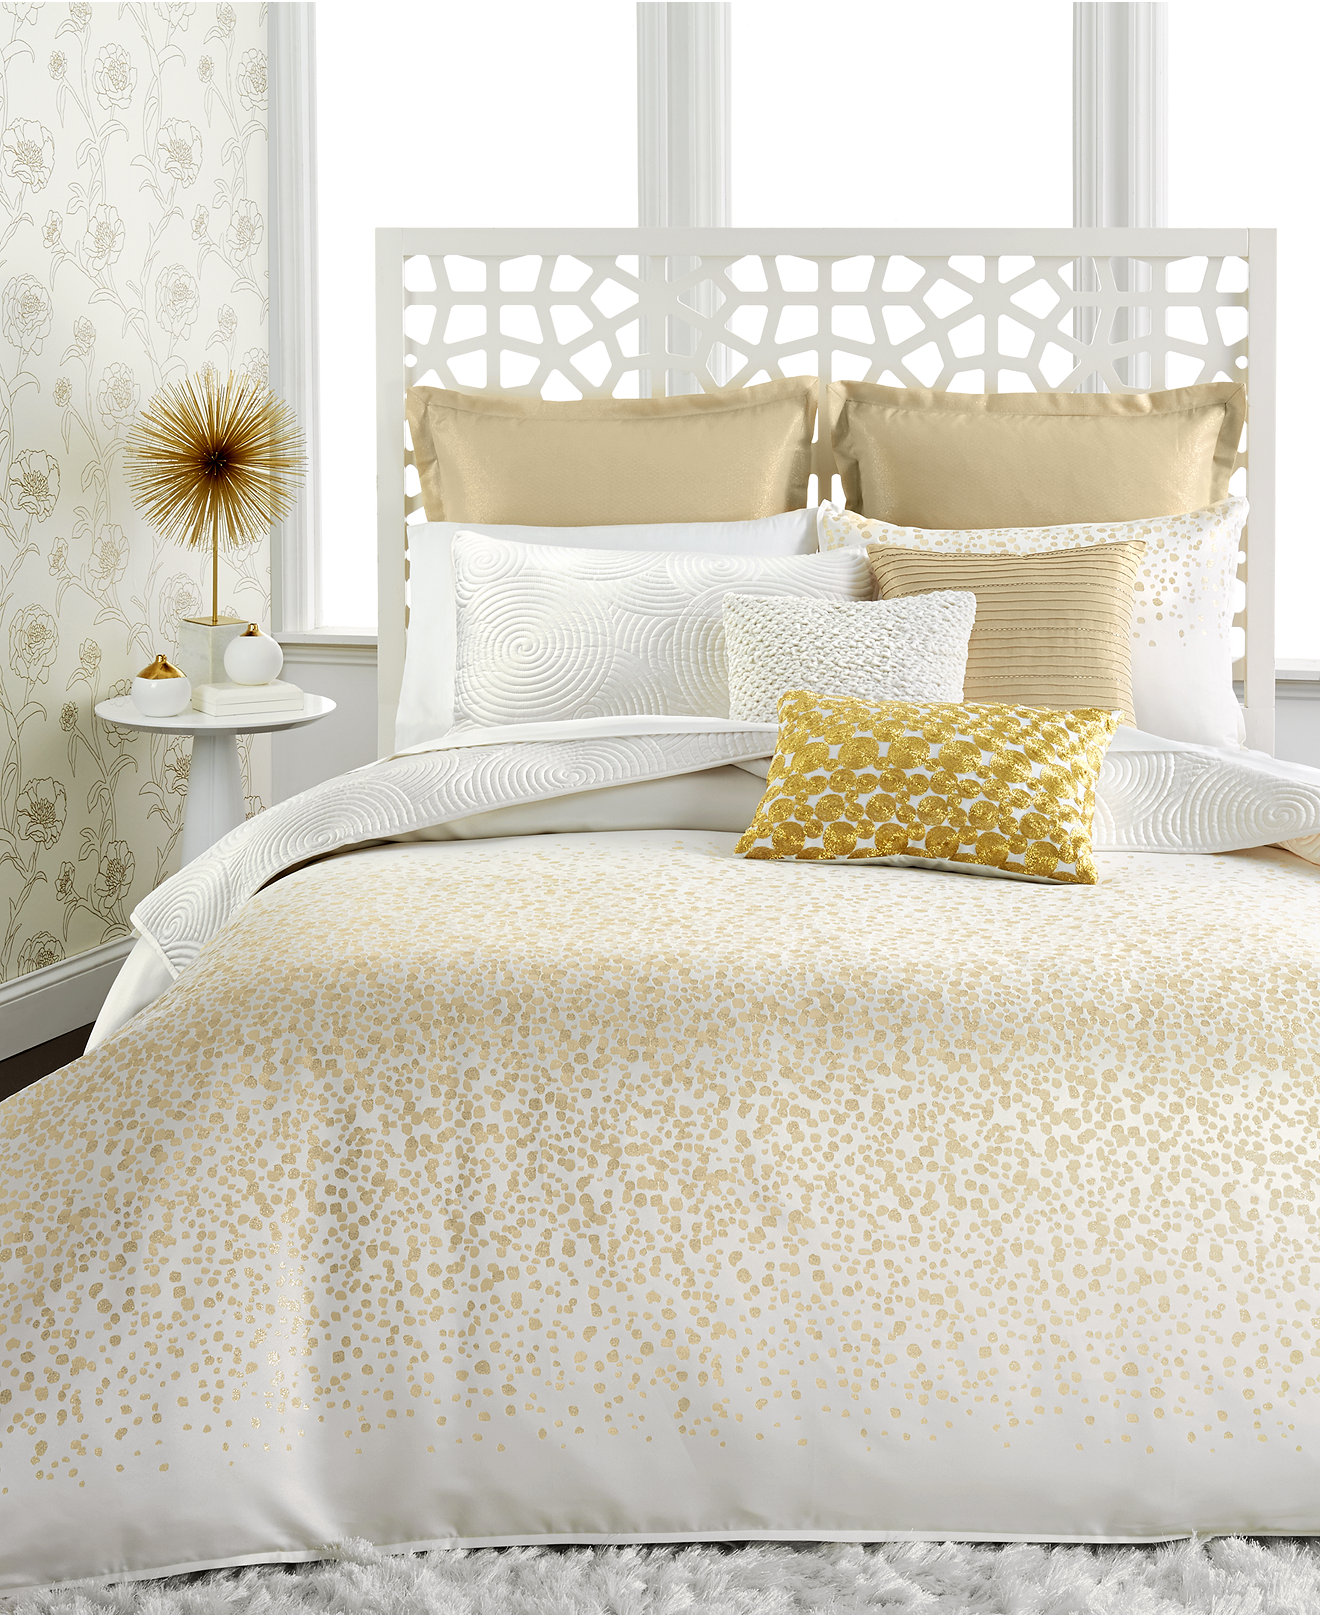 White And Gold Bedding Decor Bedding Designs